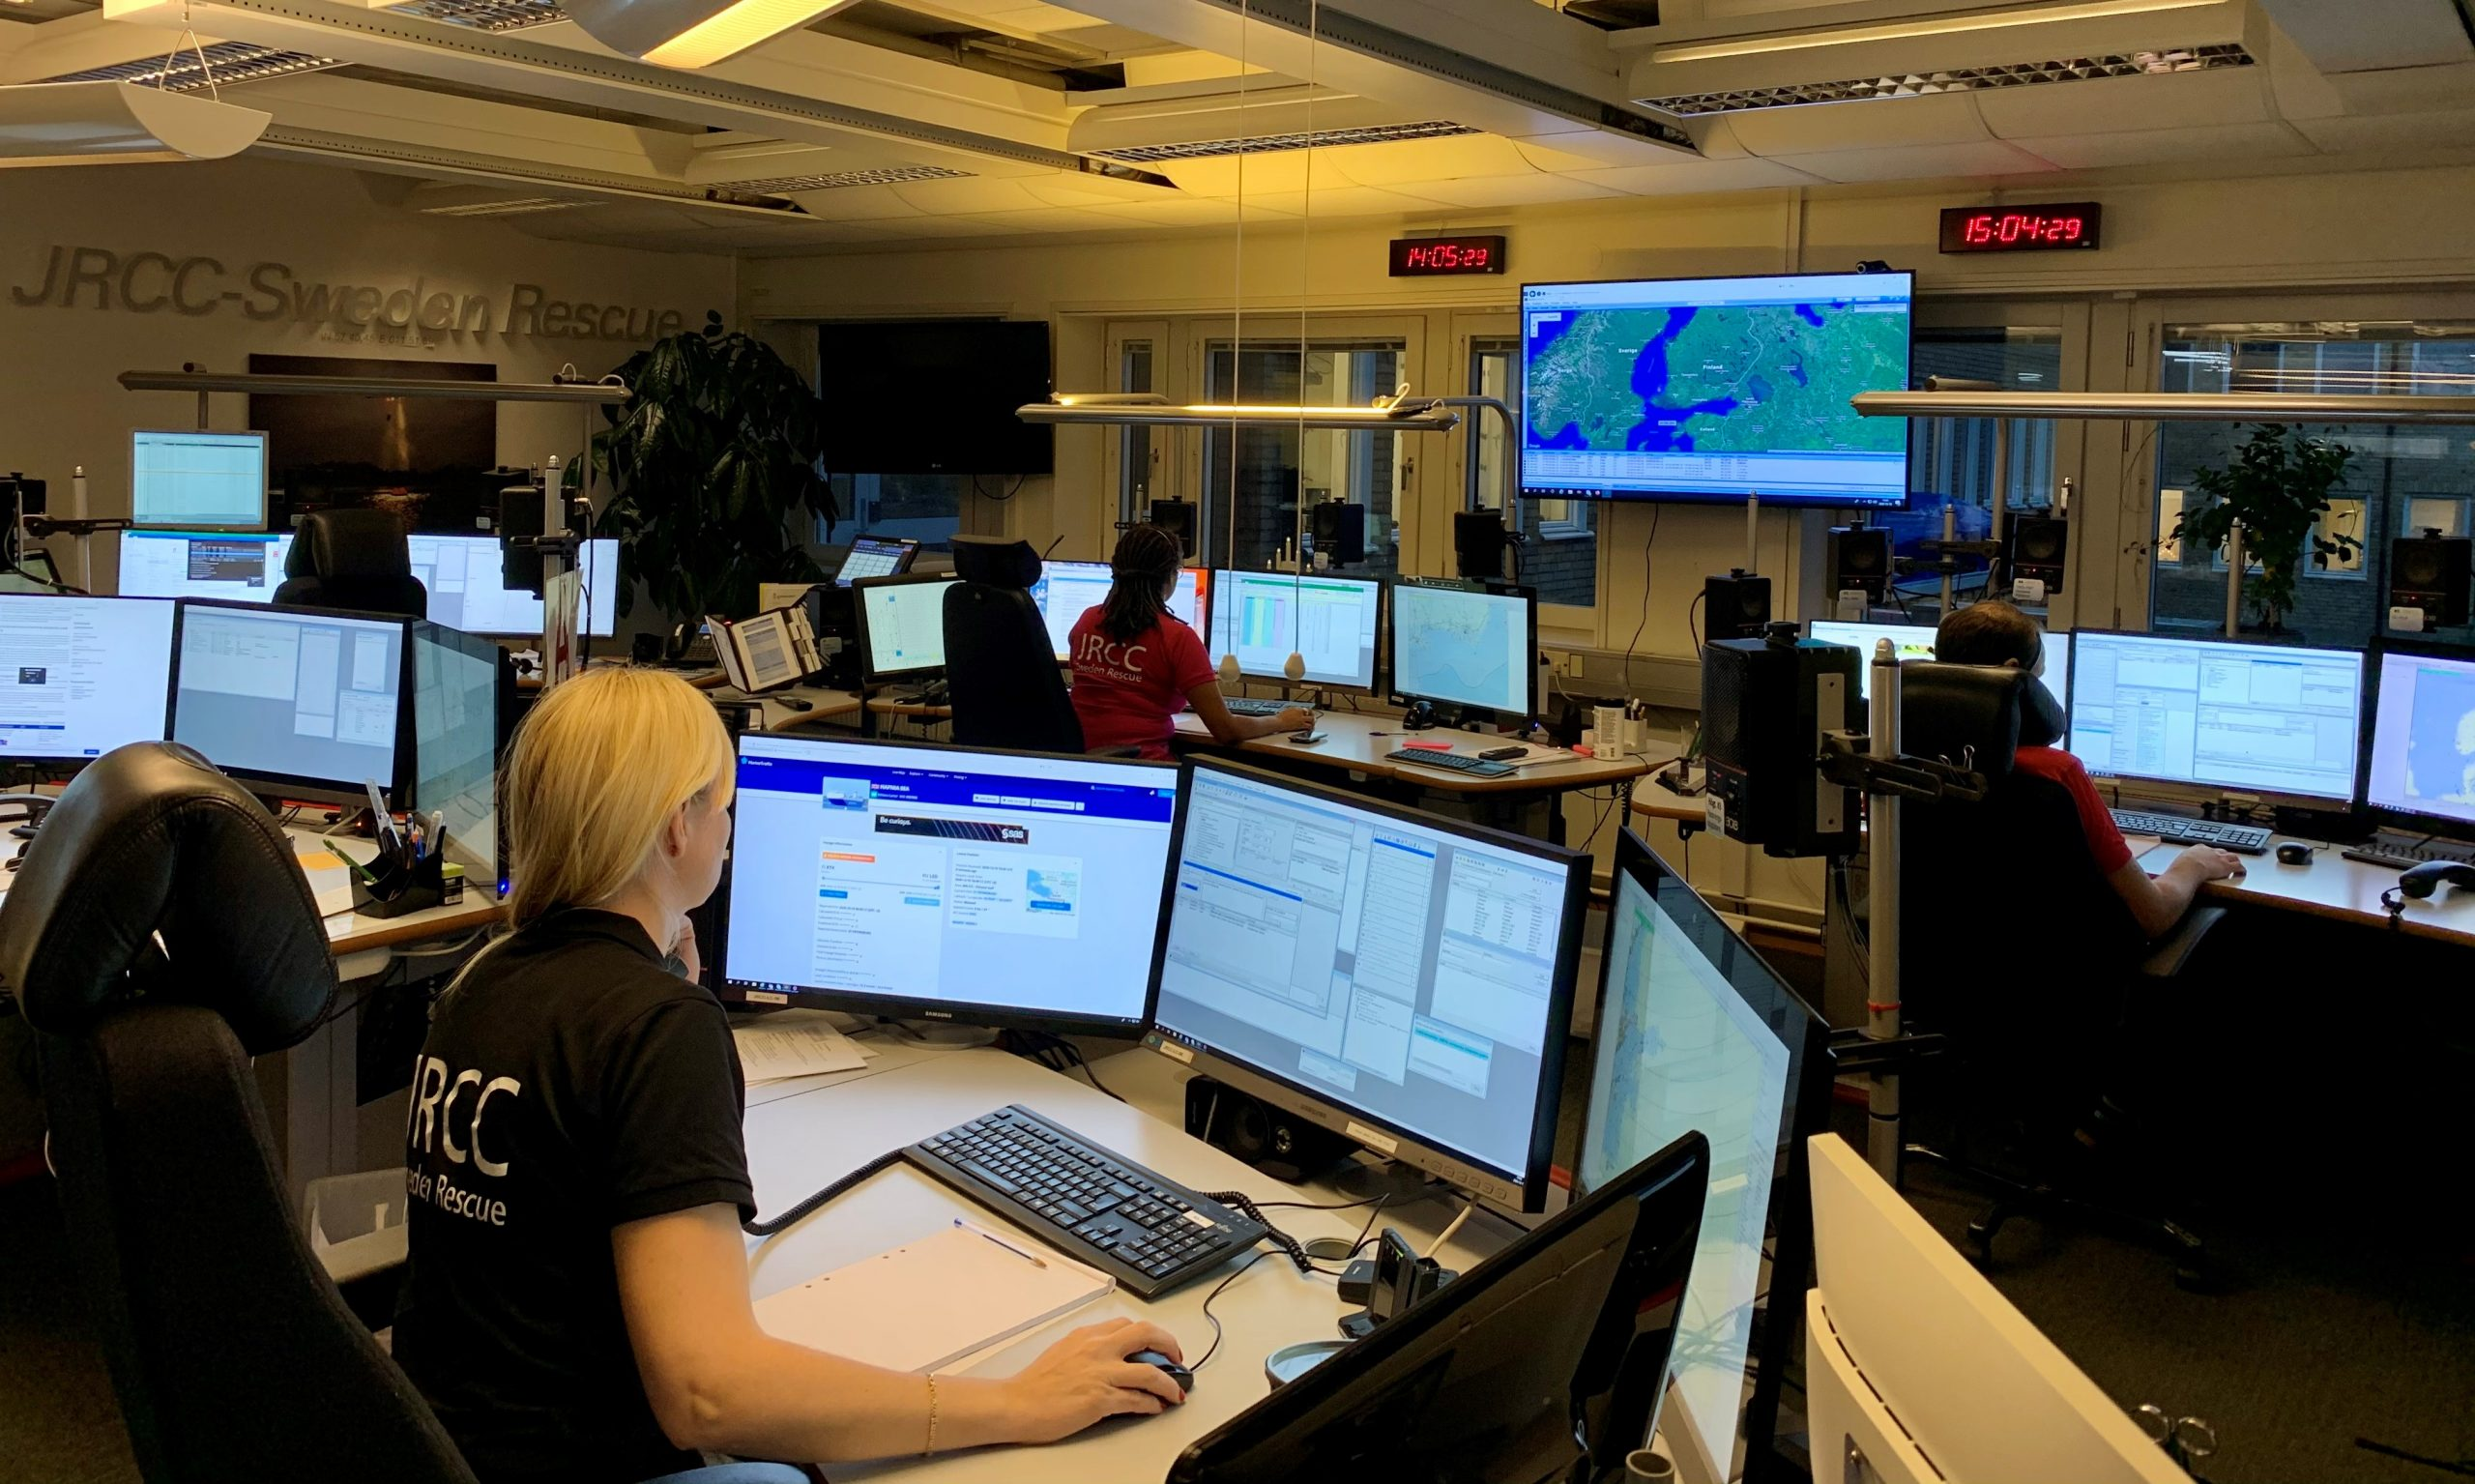 Sweden uses artificial intelligence to intercept ships' emergency calls